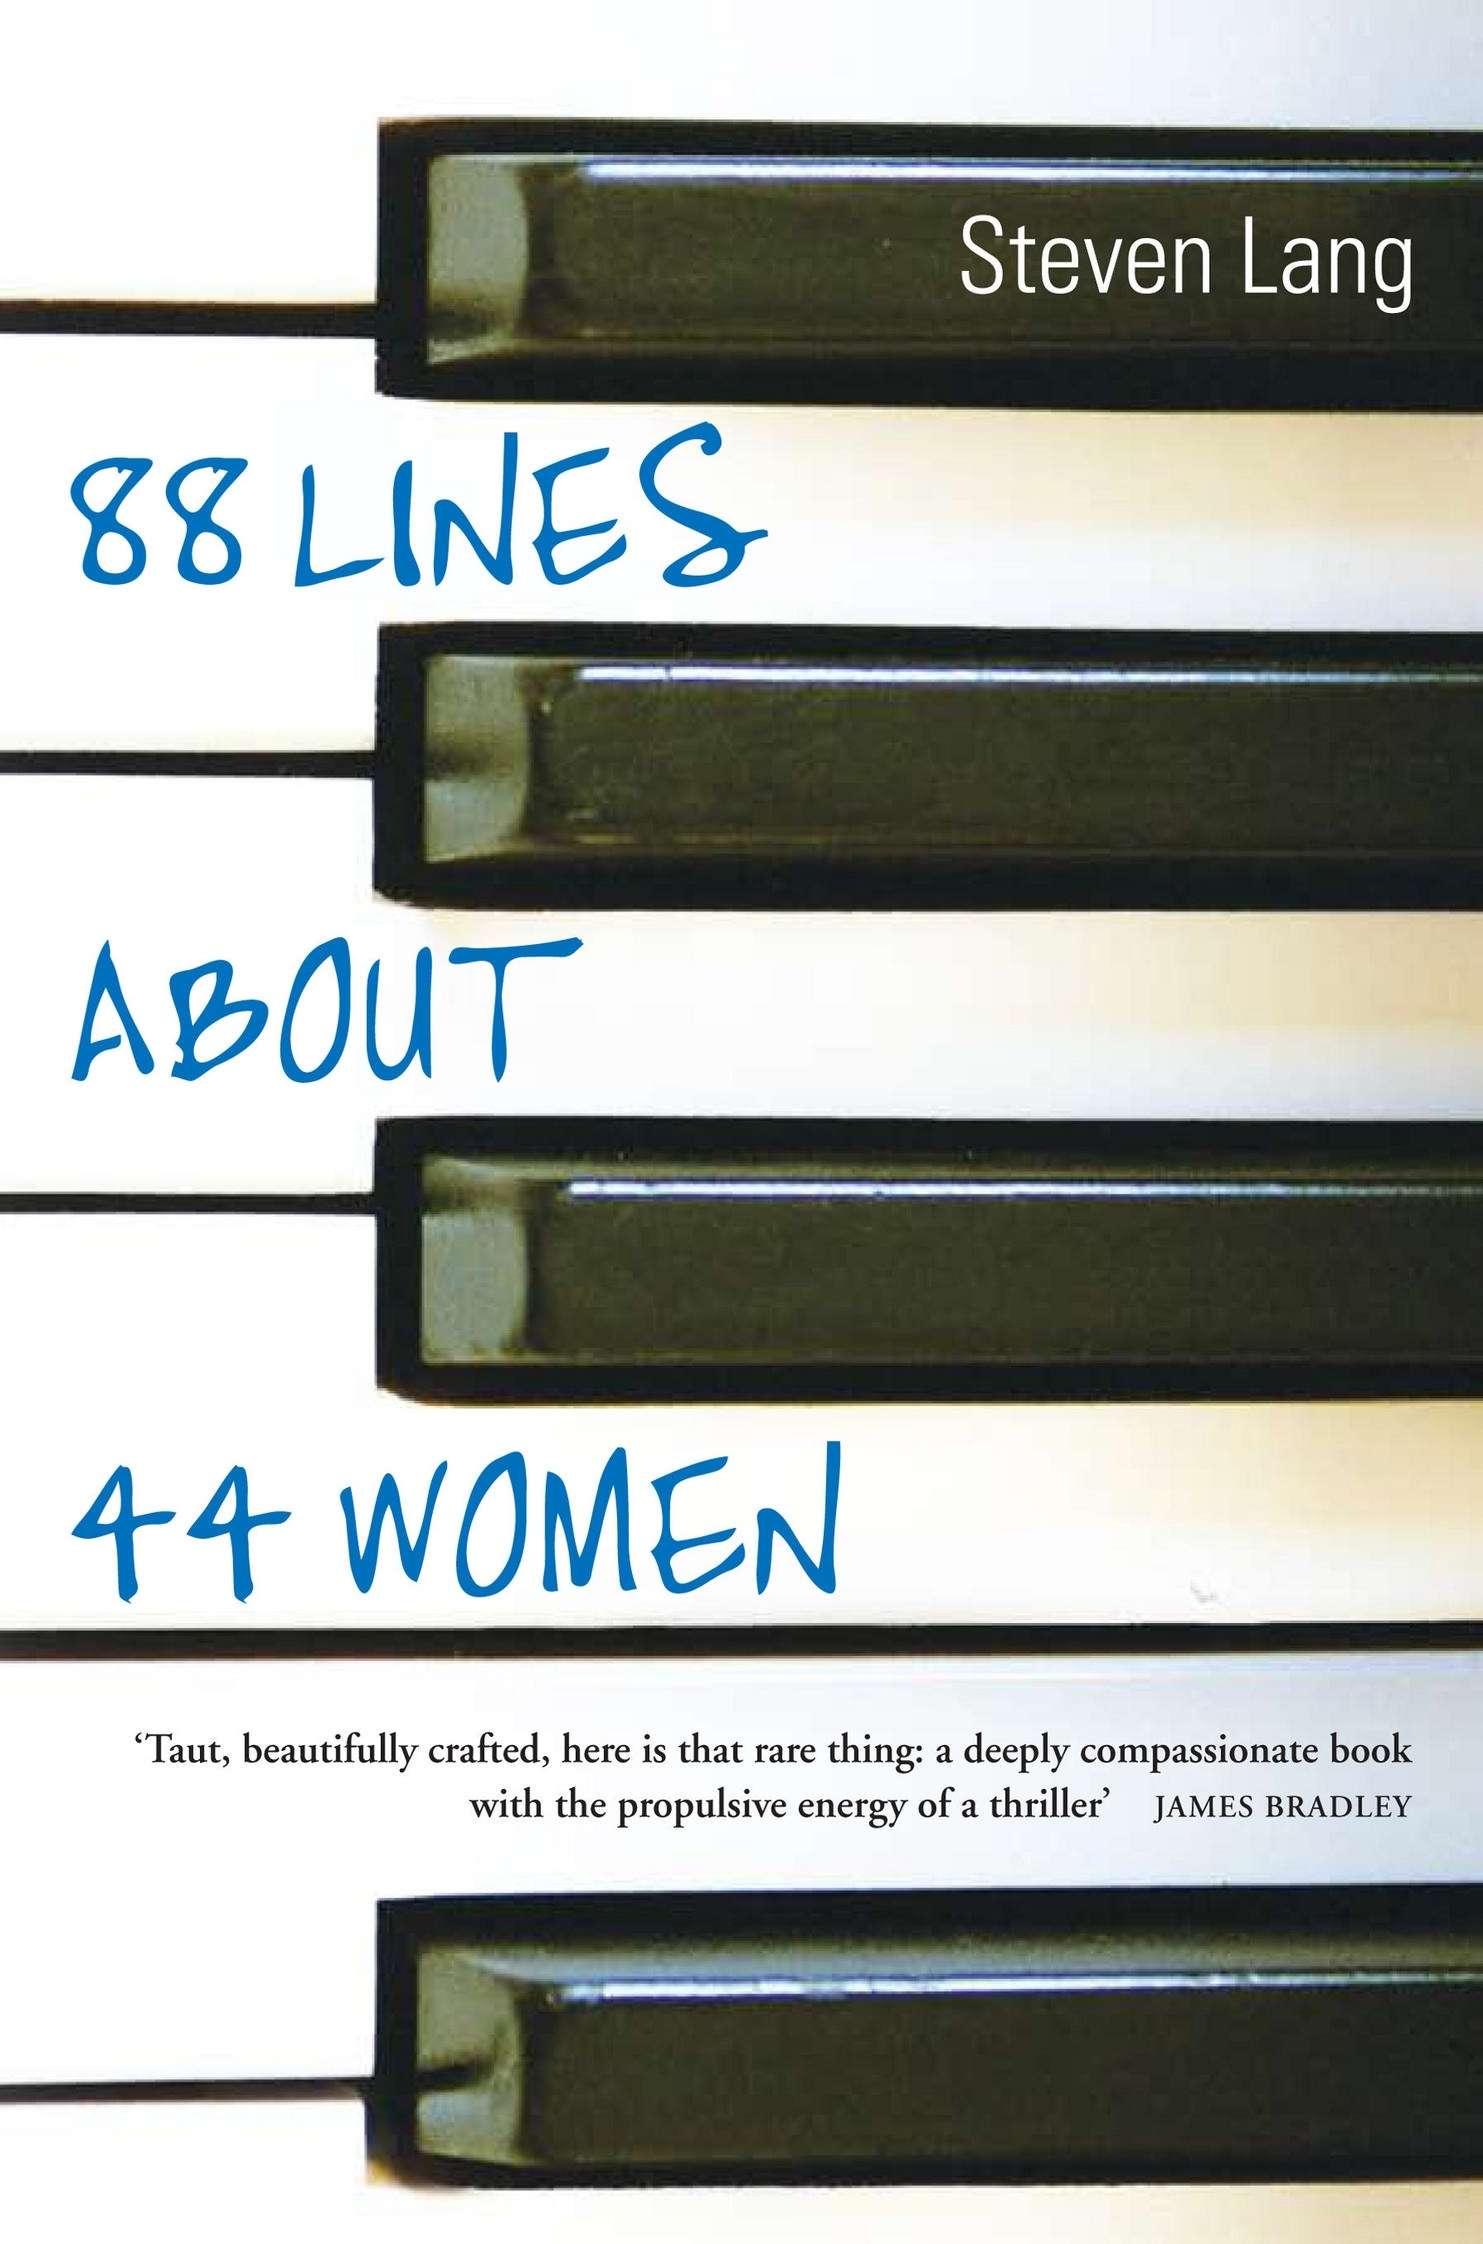 88 Lines About 44 Women